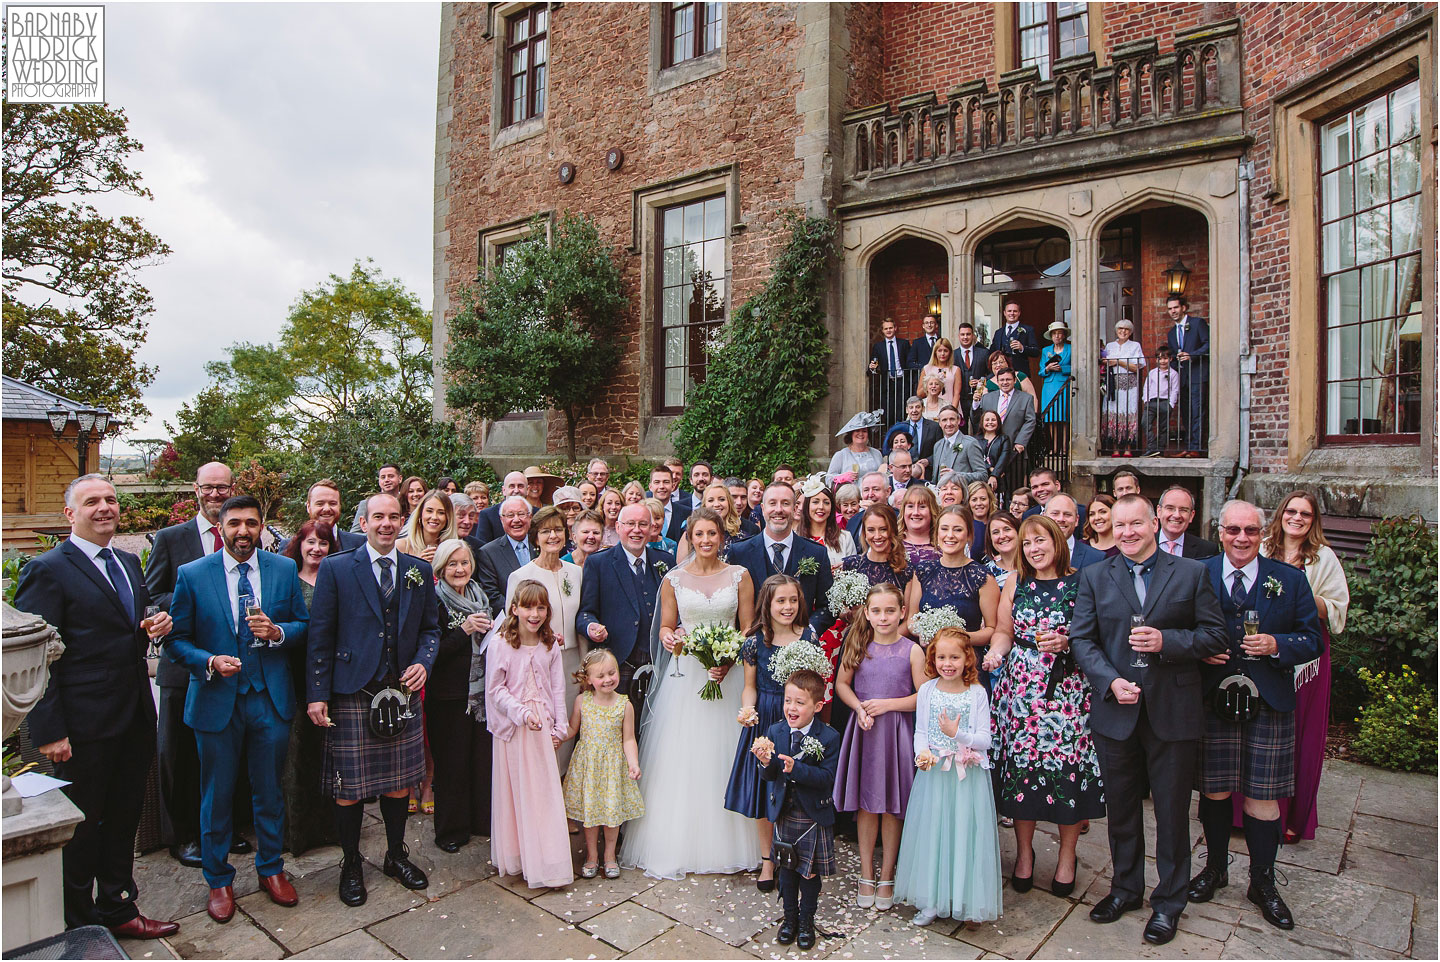 Group photo at Rowton Castle, Shropshire Wedding Photographer, Shrewsbury wedding venue, Amazing UK Castle Wedding